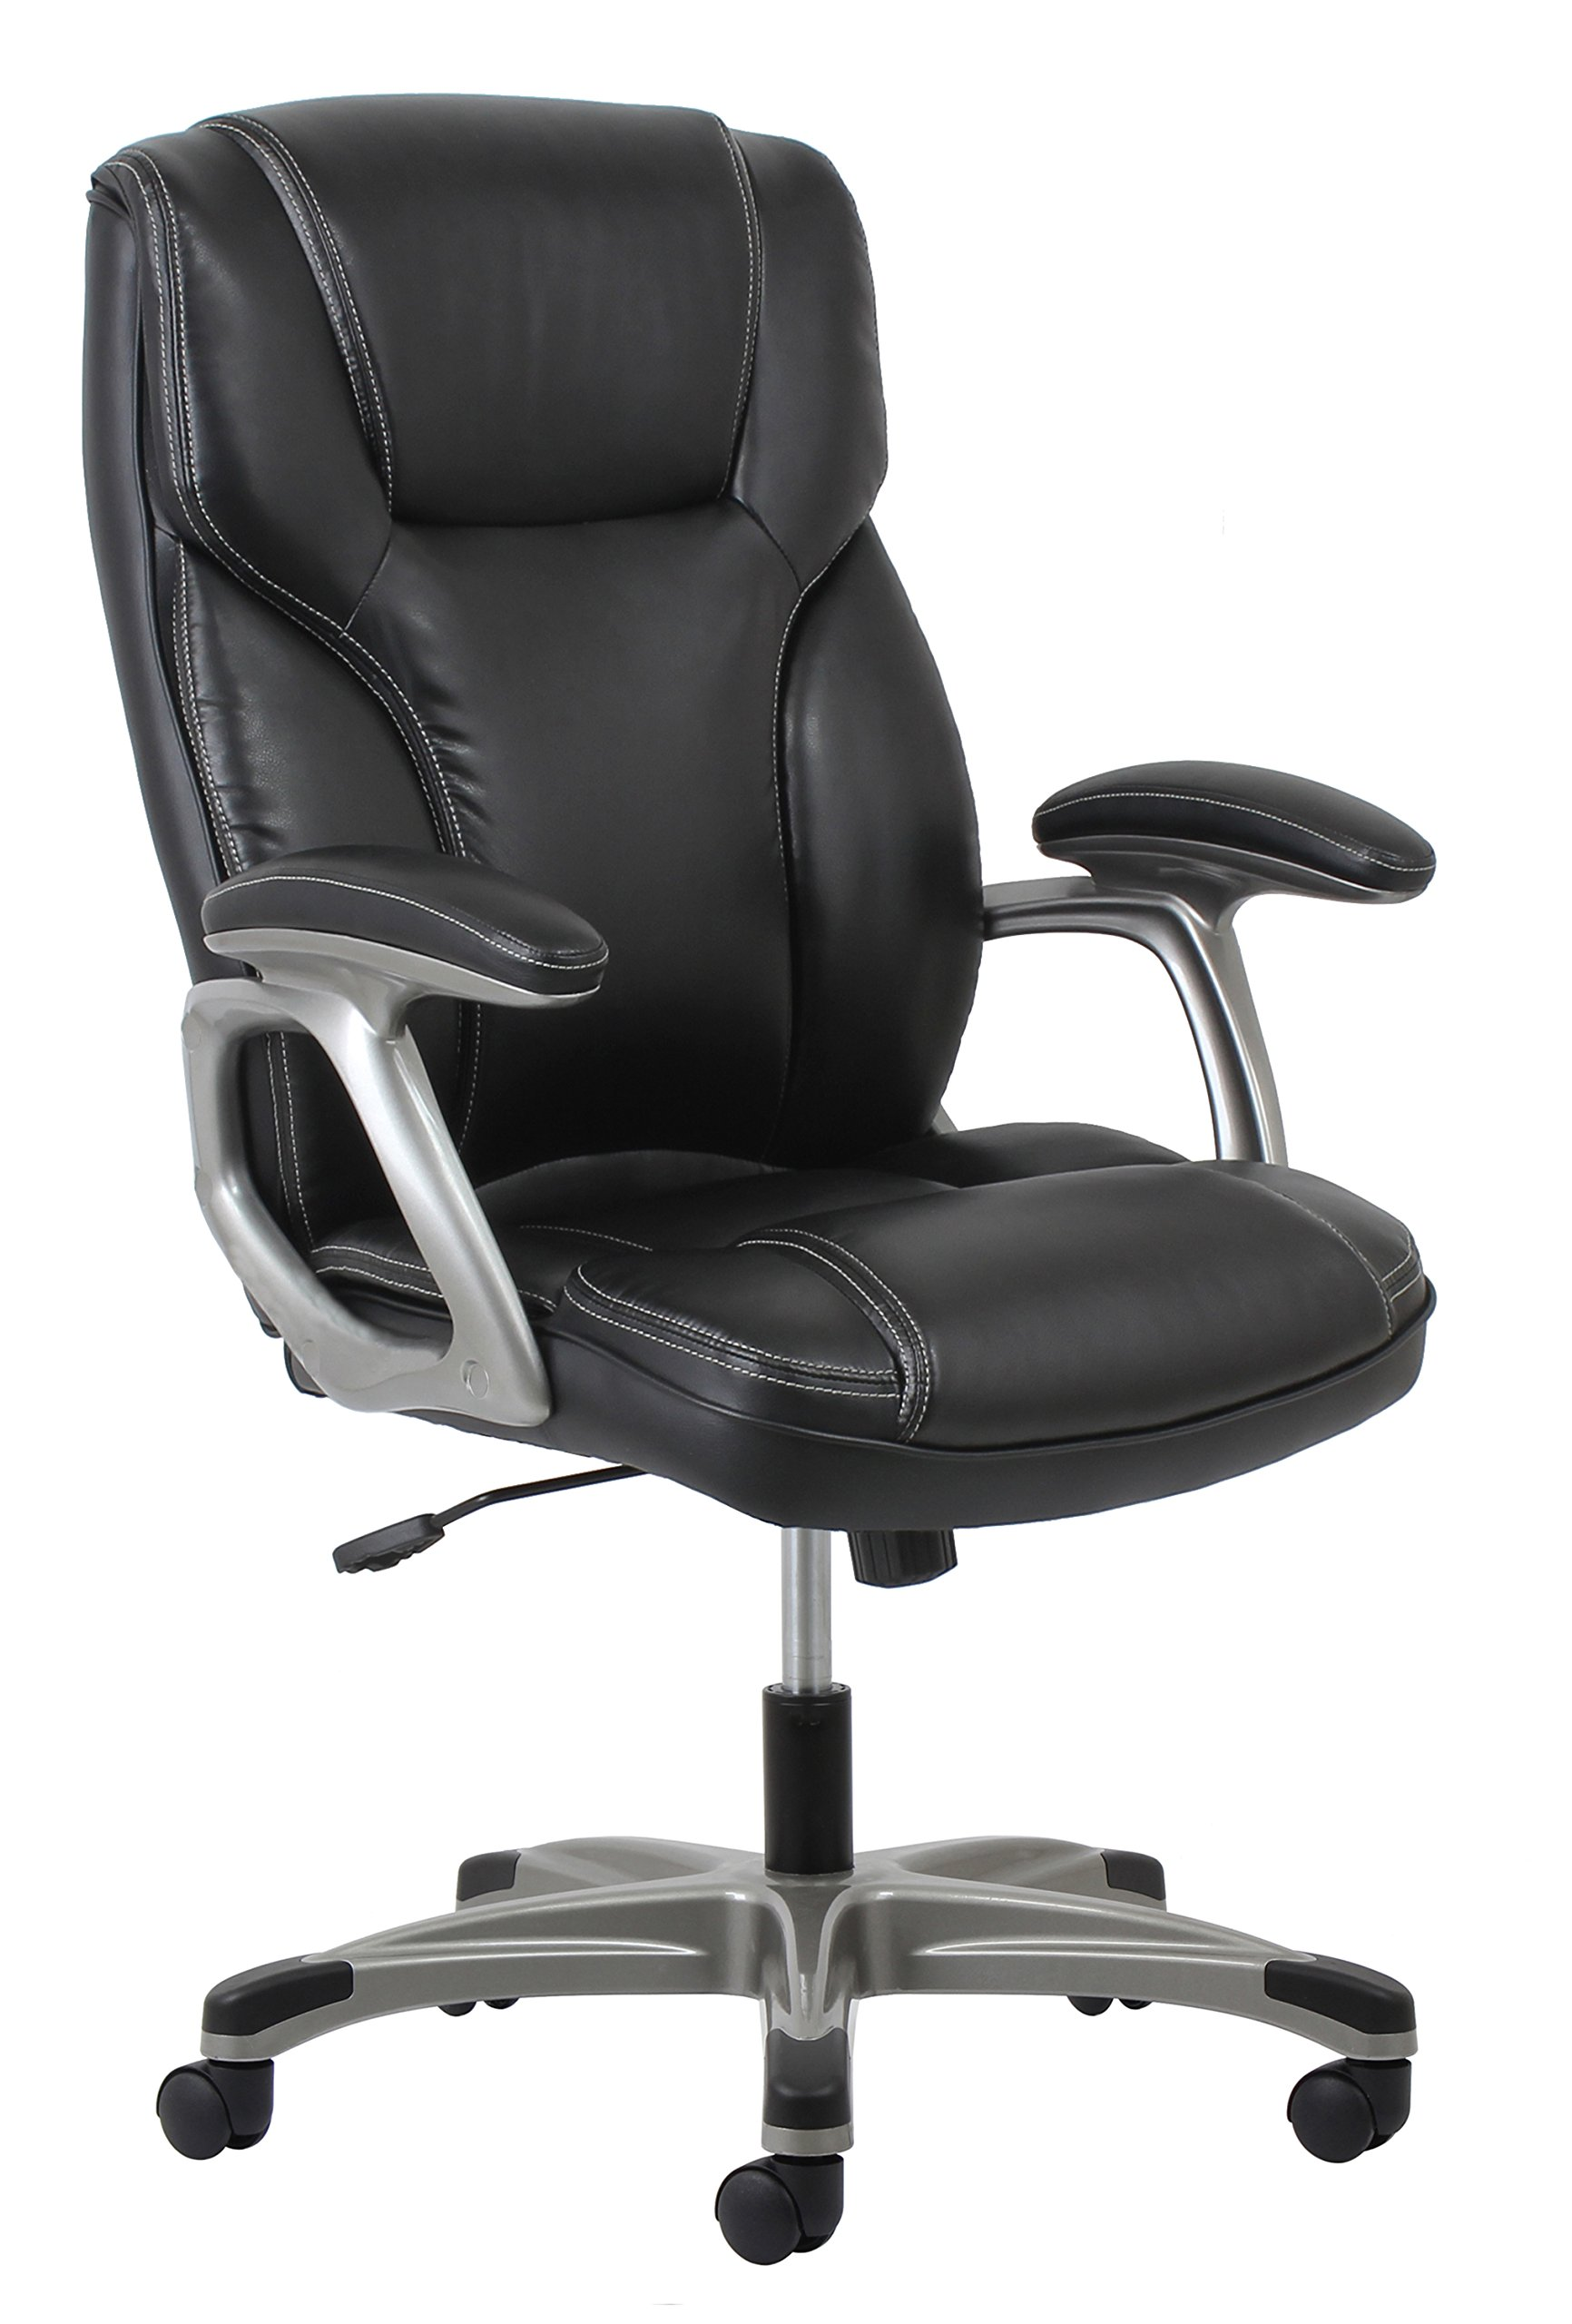 Essentials High-Back Leather Executive Office/Computer Chair with Arms - Ergonomic Swivel Chair (ESS-6030-BLK) by OFM